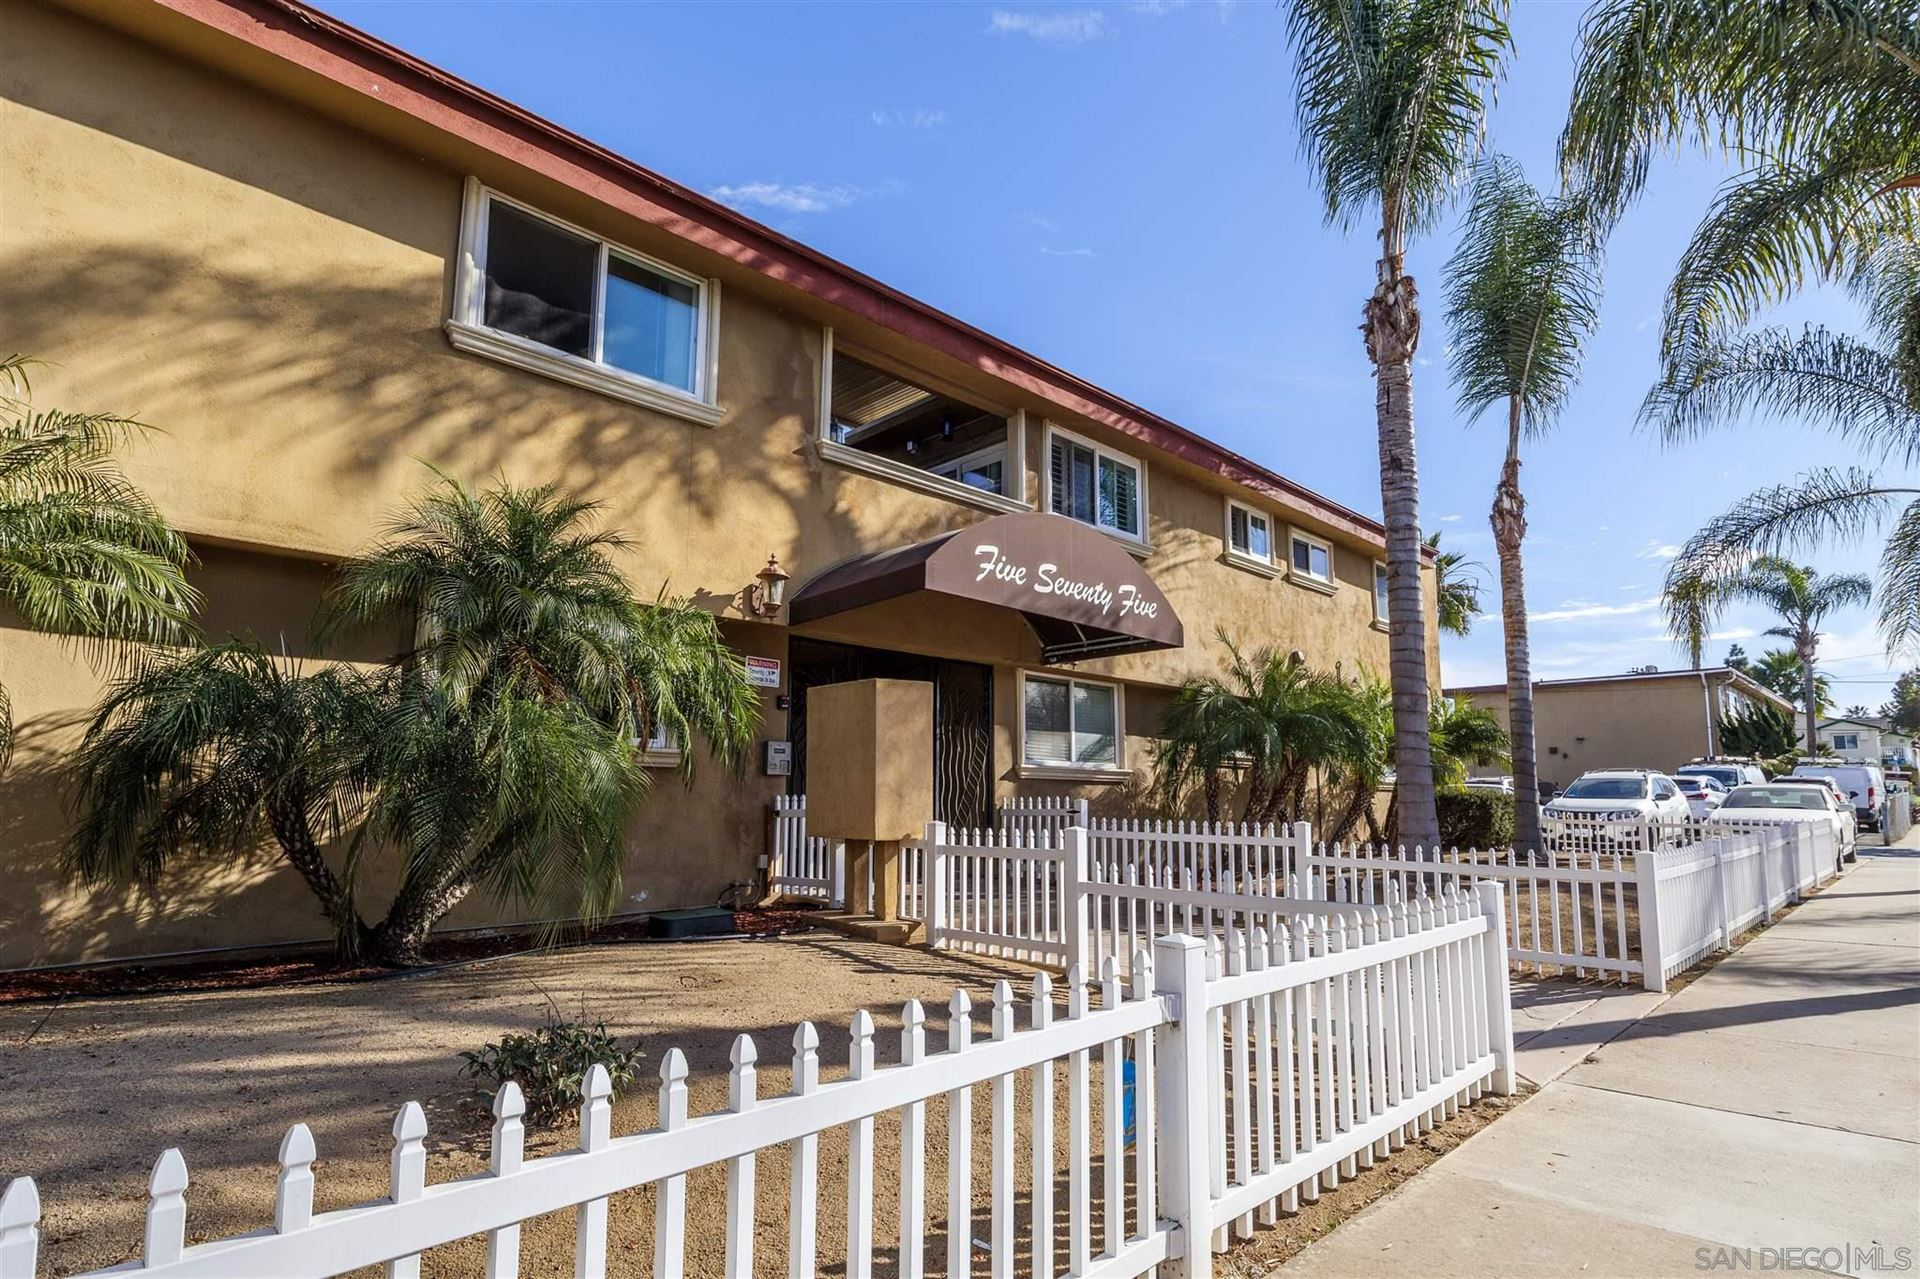 Photo of 575 7th Street #103, Imperial Beach, CA 91932 (MLS # 200053595)